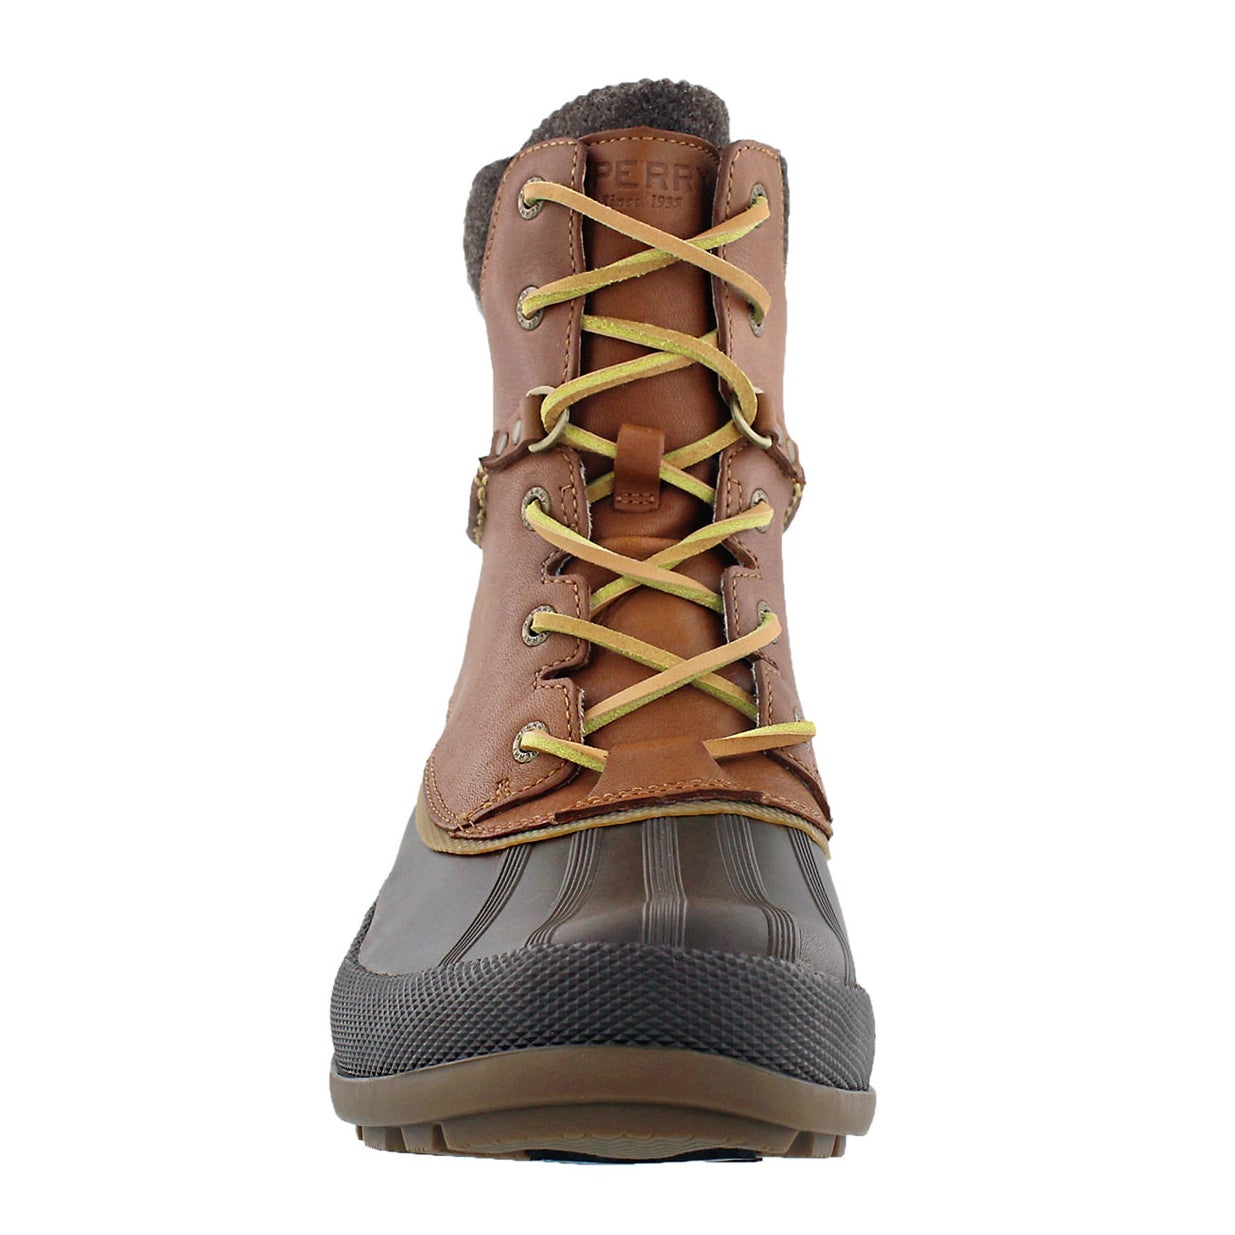 Mns Cold Bay tan lined lace up boot